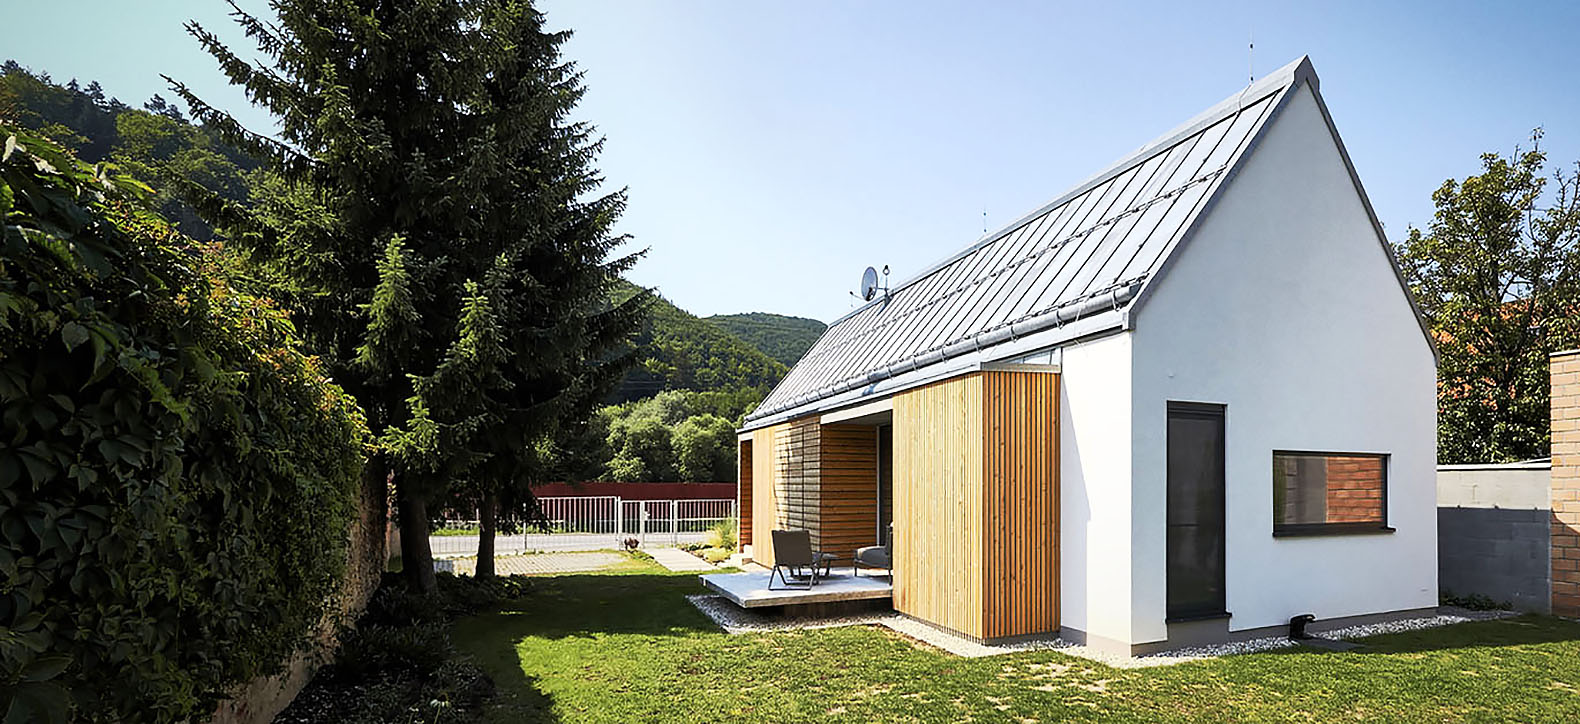 Slovakian home uses steko a unique construction method from switzerland